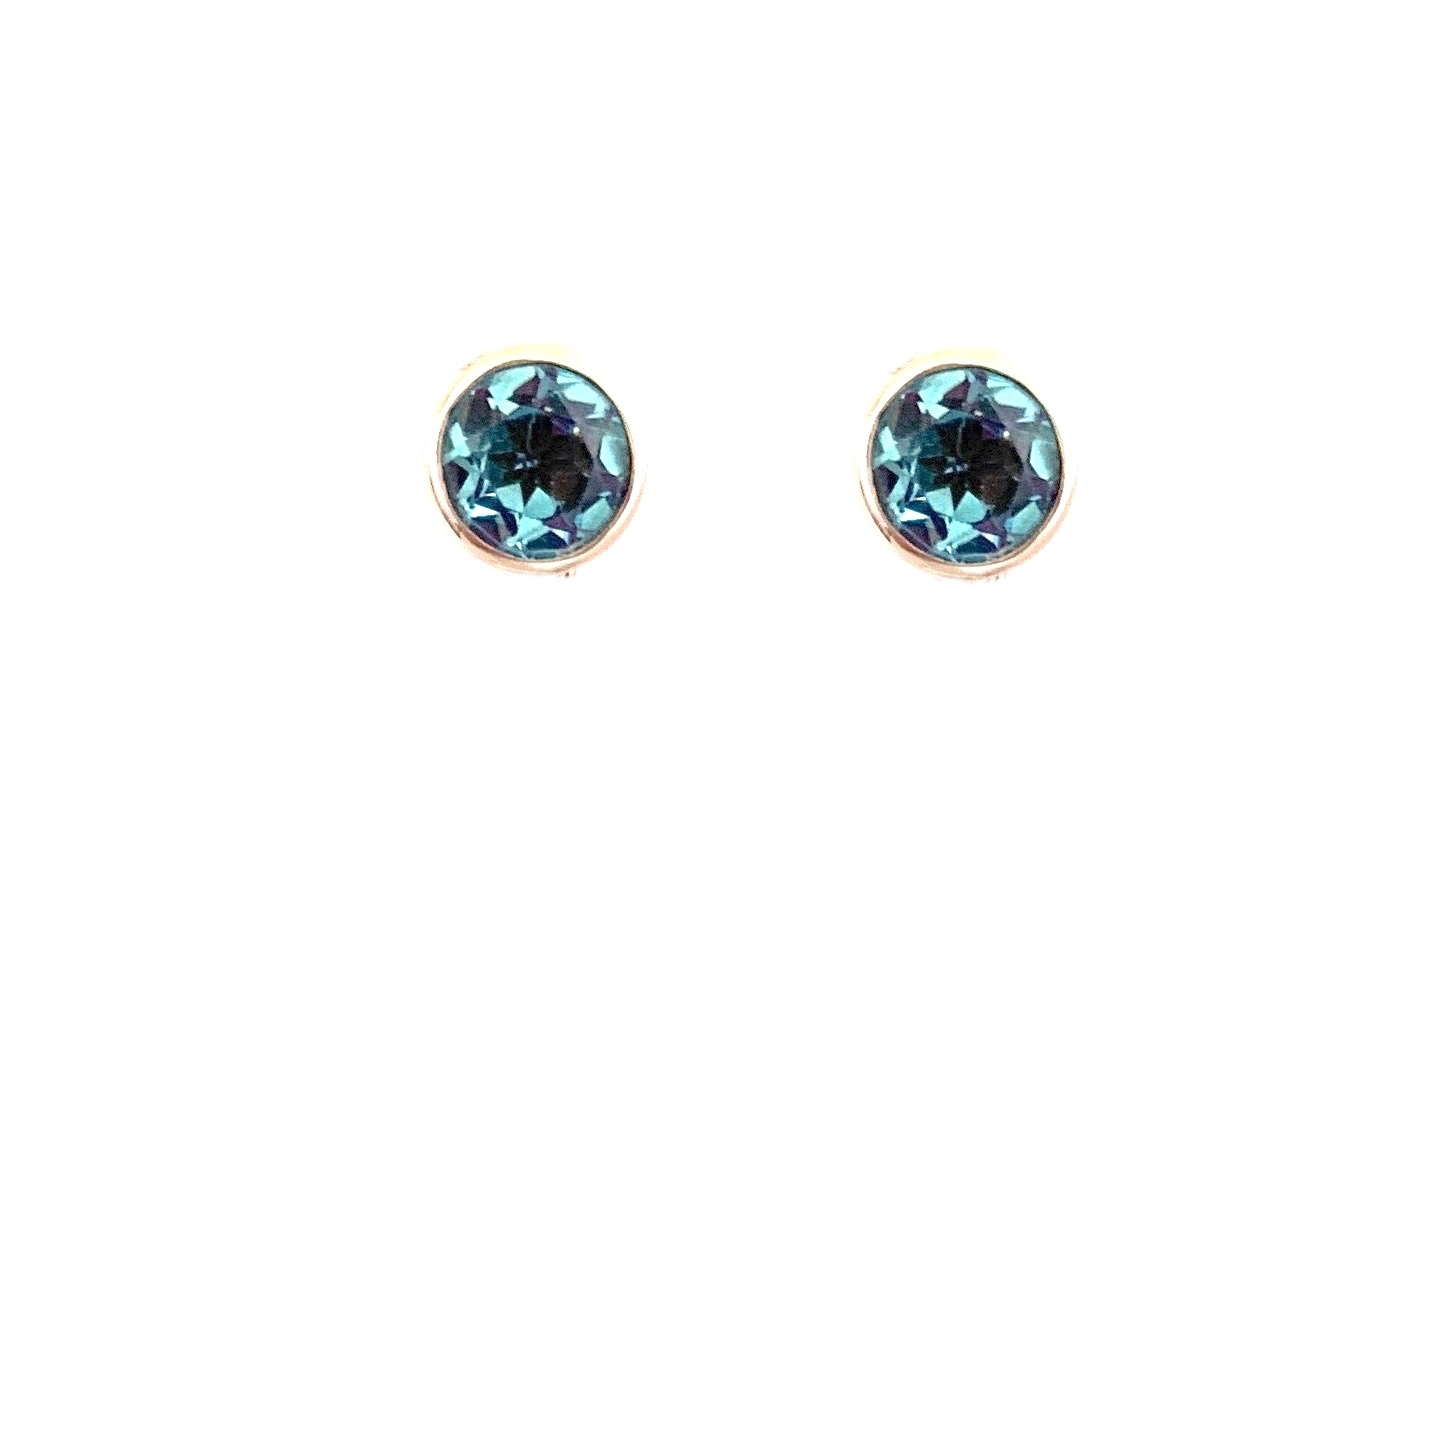 Changeable oorbellen Changeable earrings turquoise and topaz